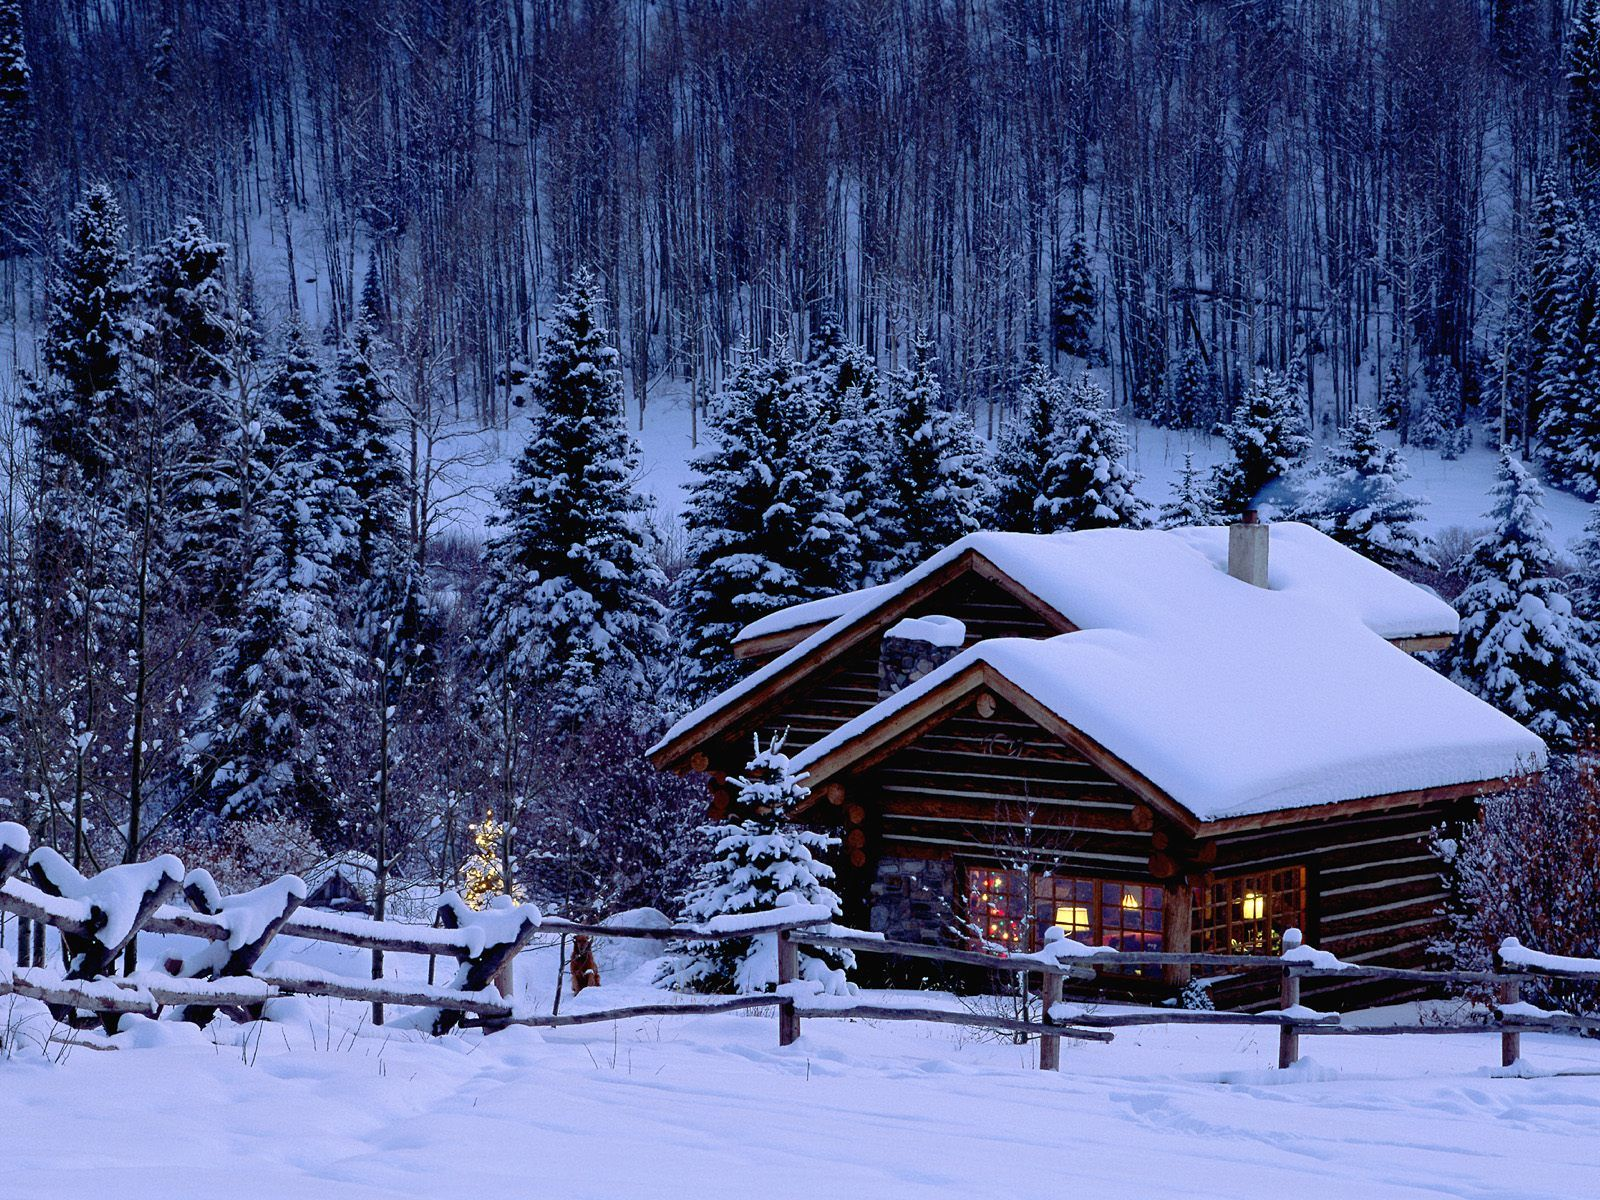 Winter Cabin Wallpaper Images   Picseriocom 1600x1200